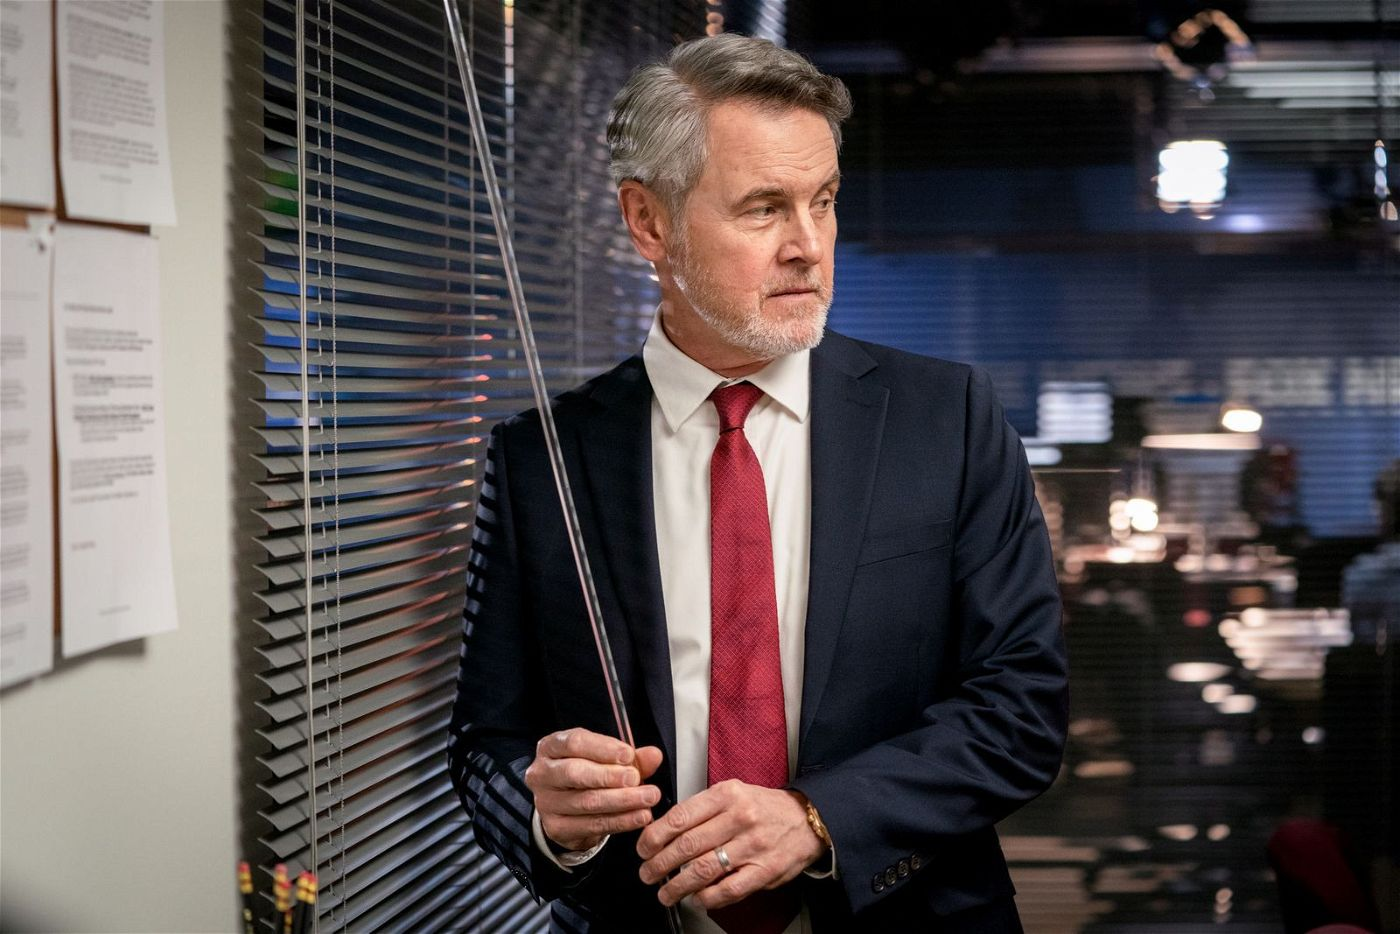 Bill Shine (Mark Moses) machte bei Fox News Karriere, bevor er für Donald Trump arbeitete.